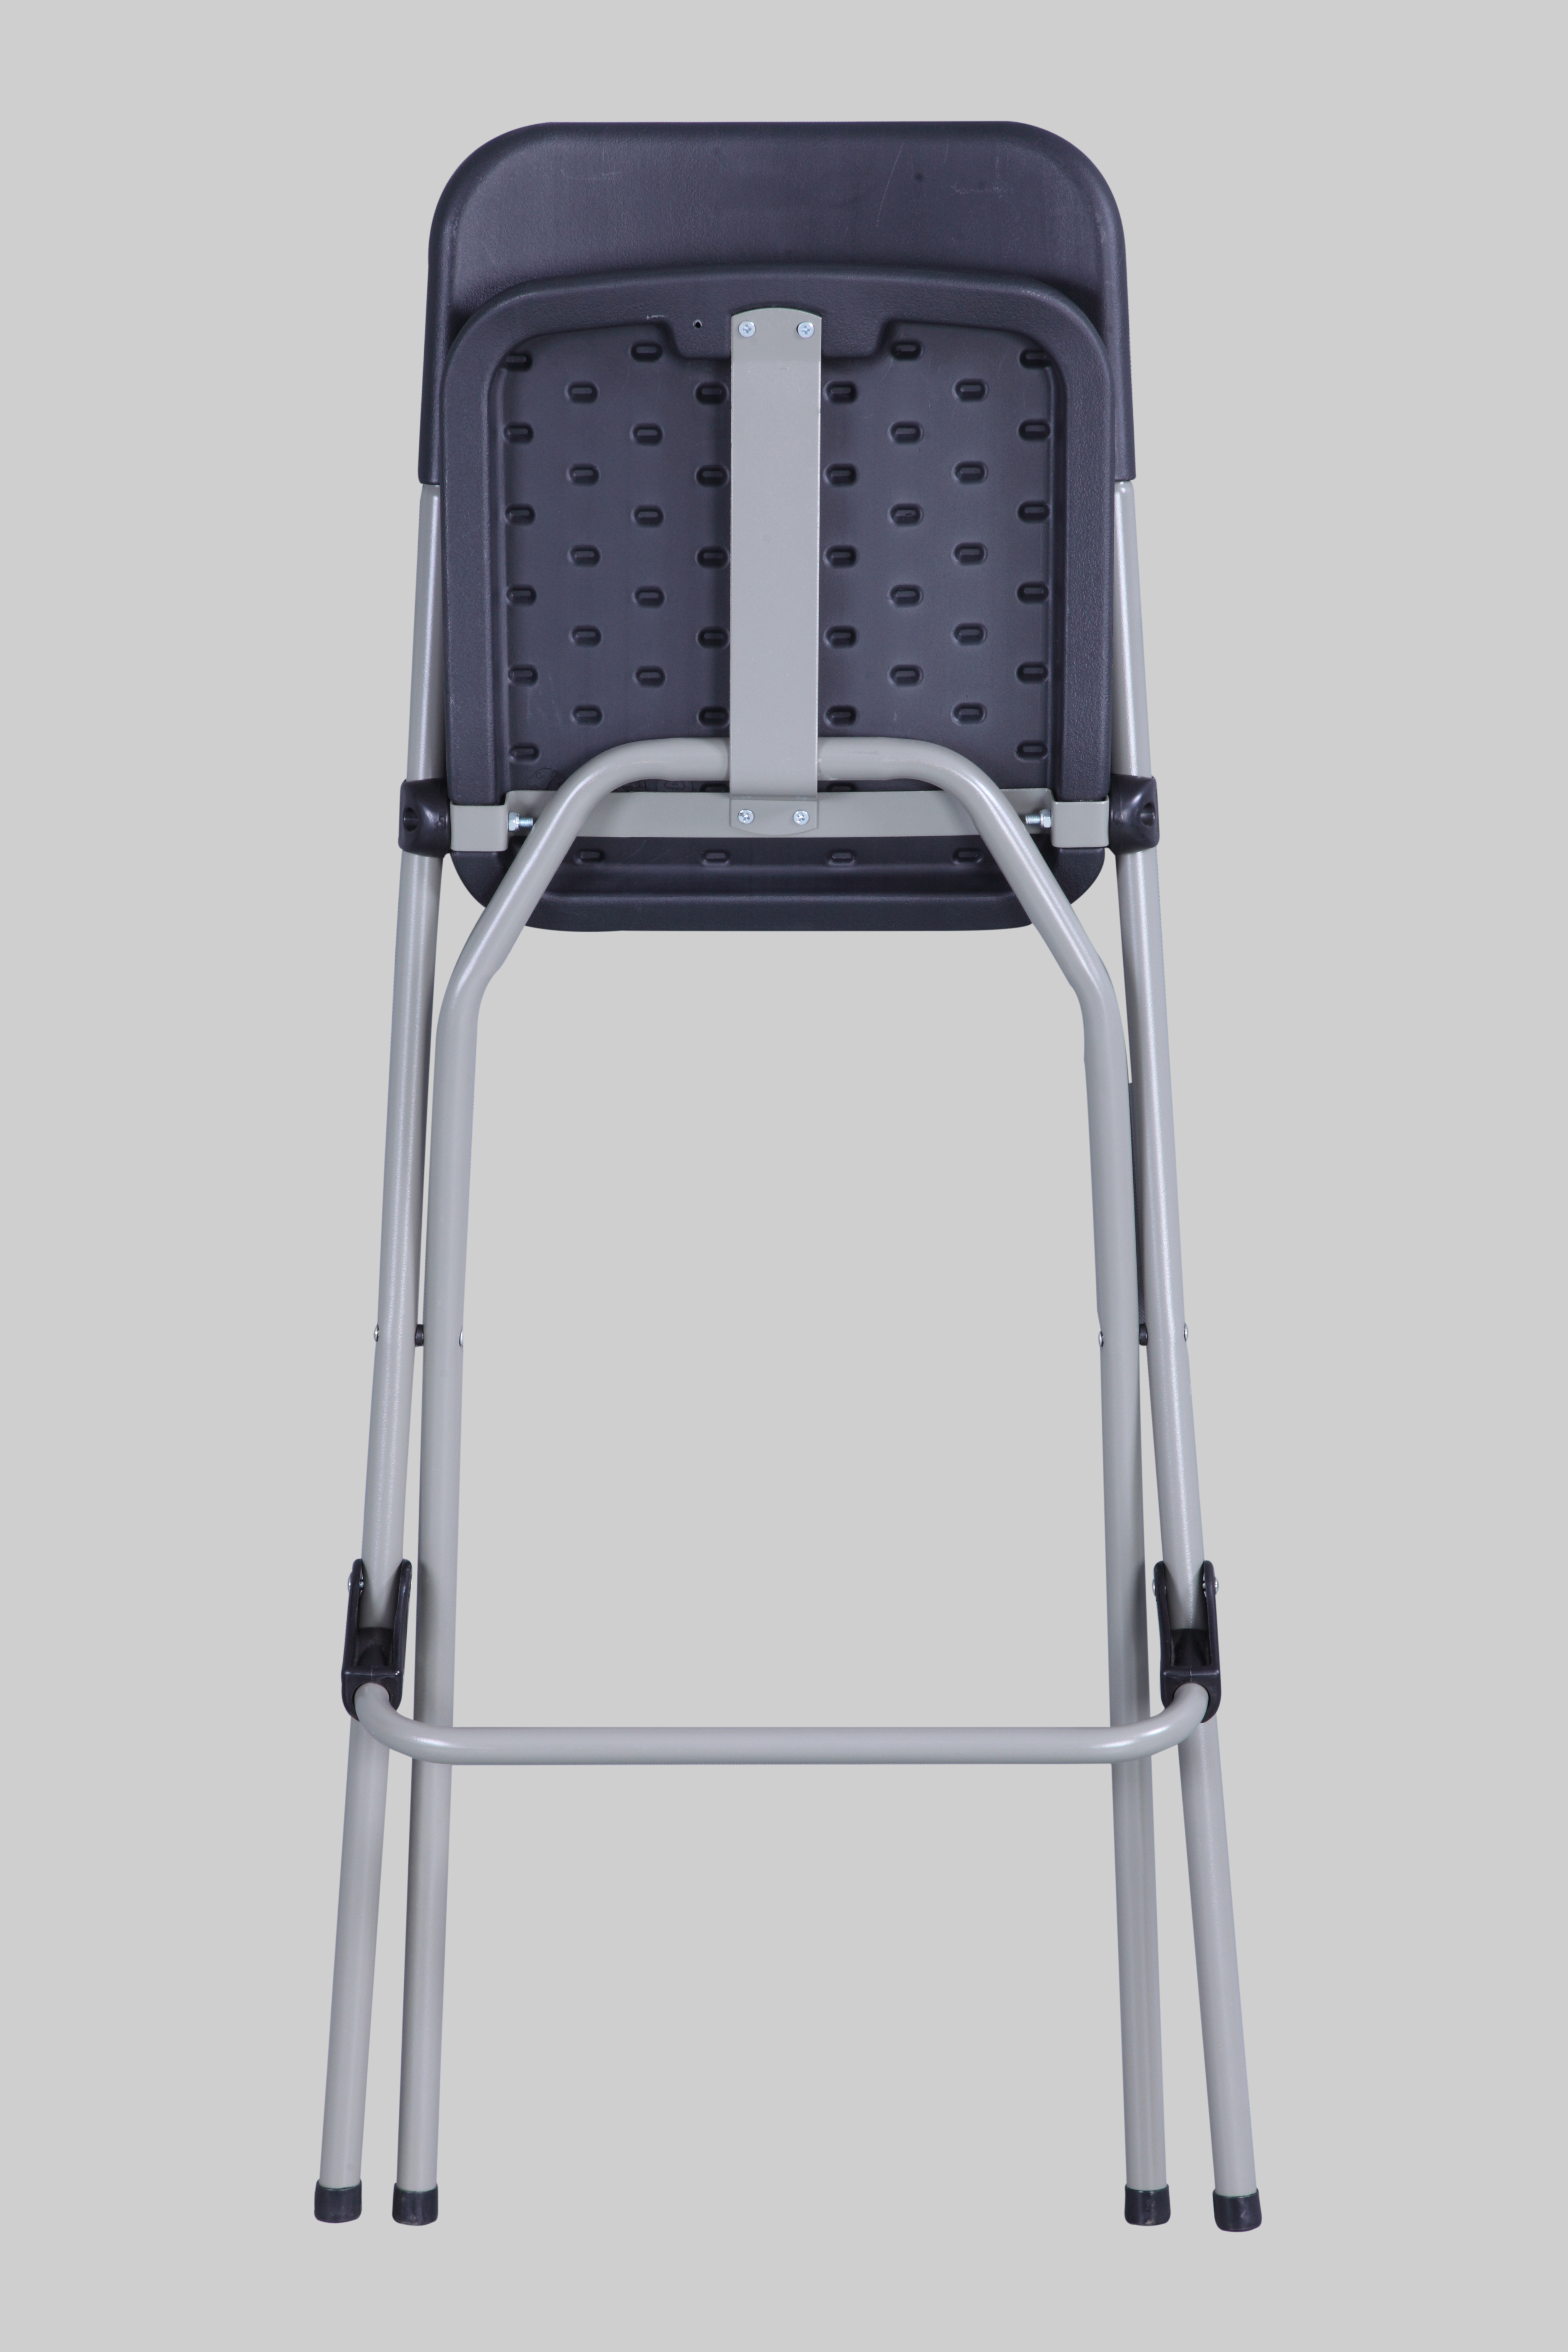 Folding Chair with Many Colors